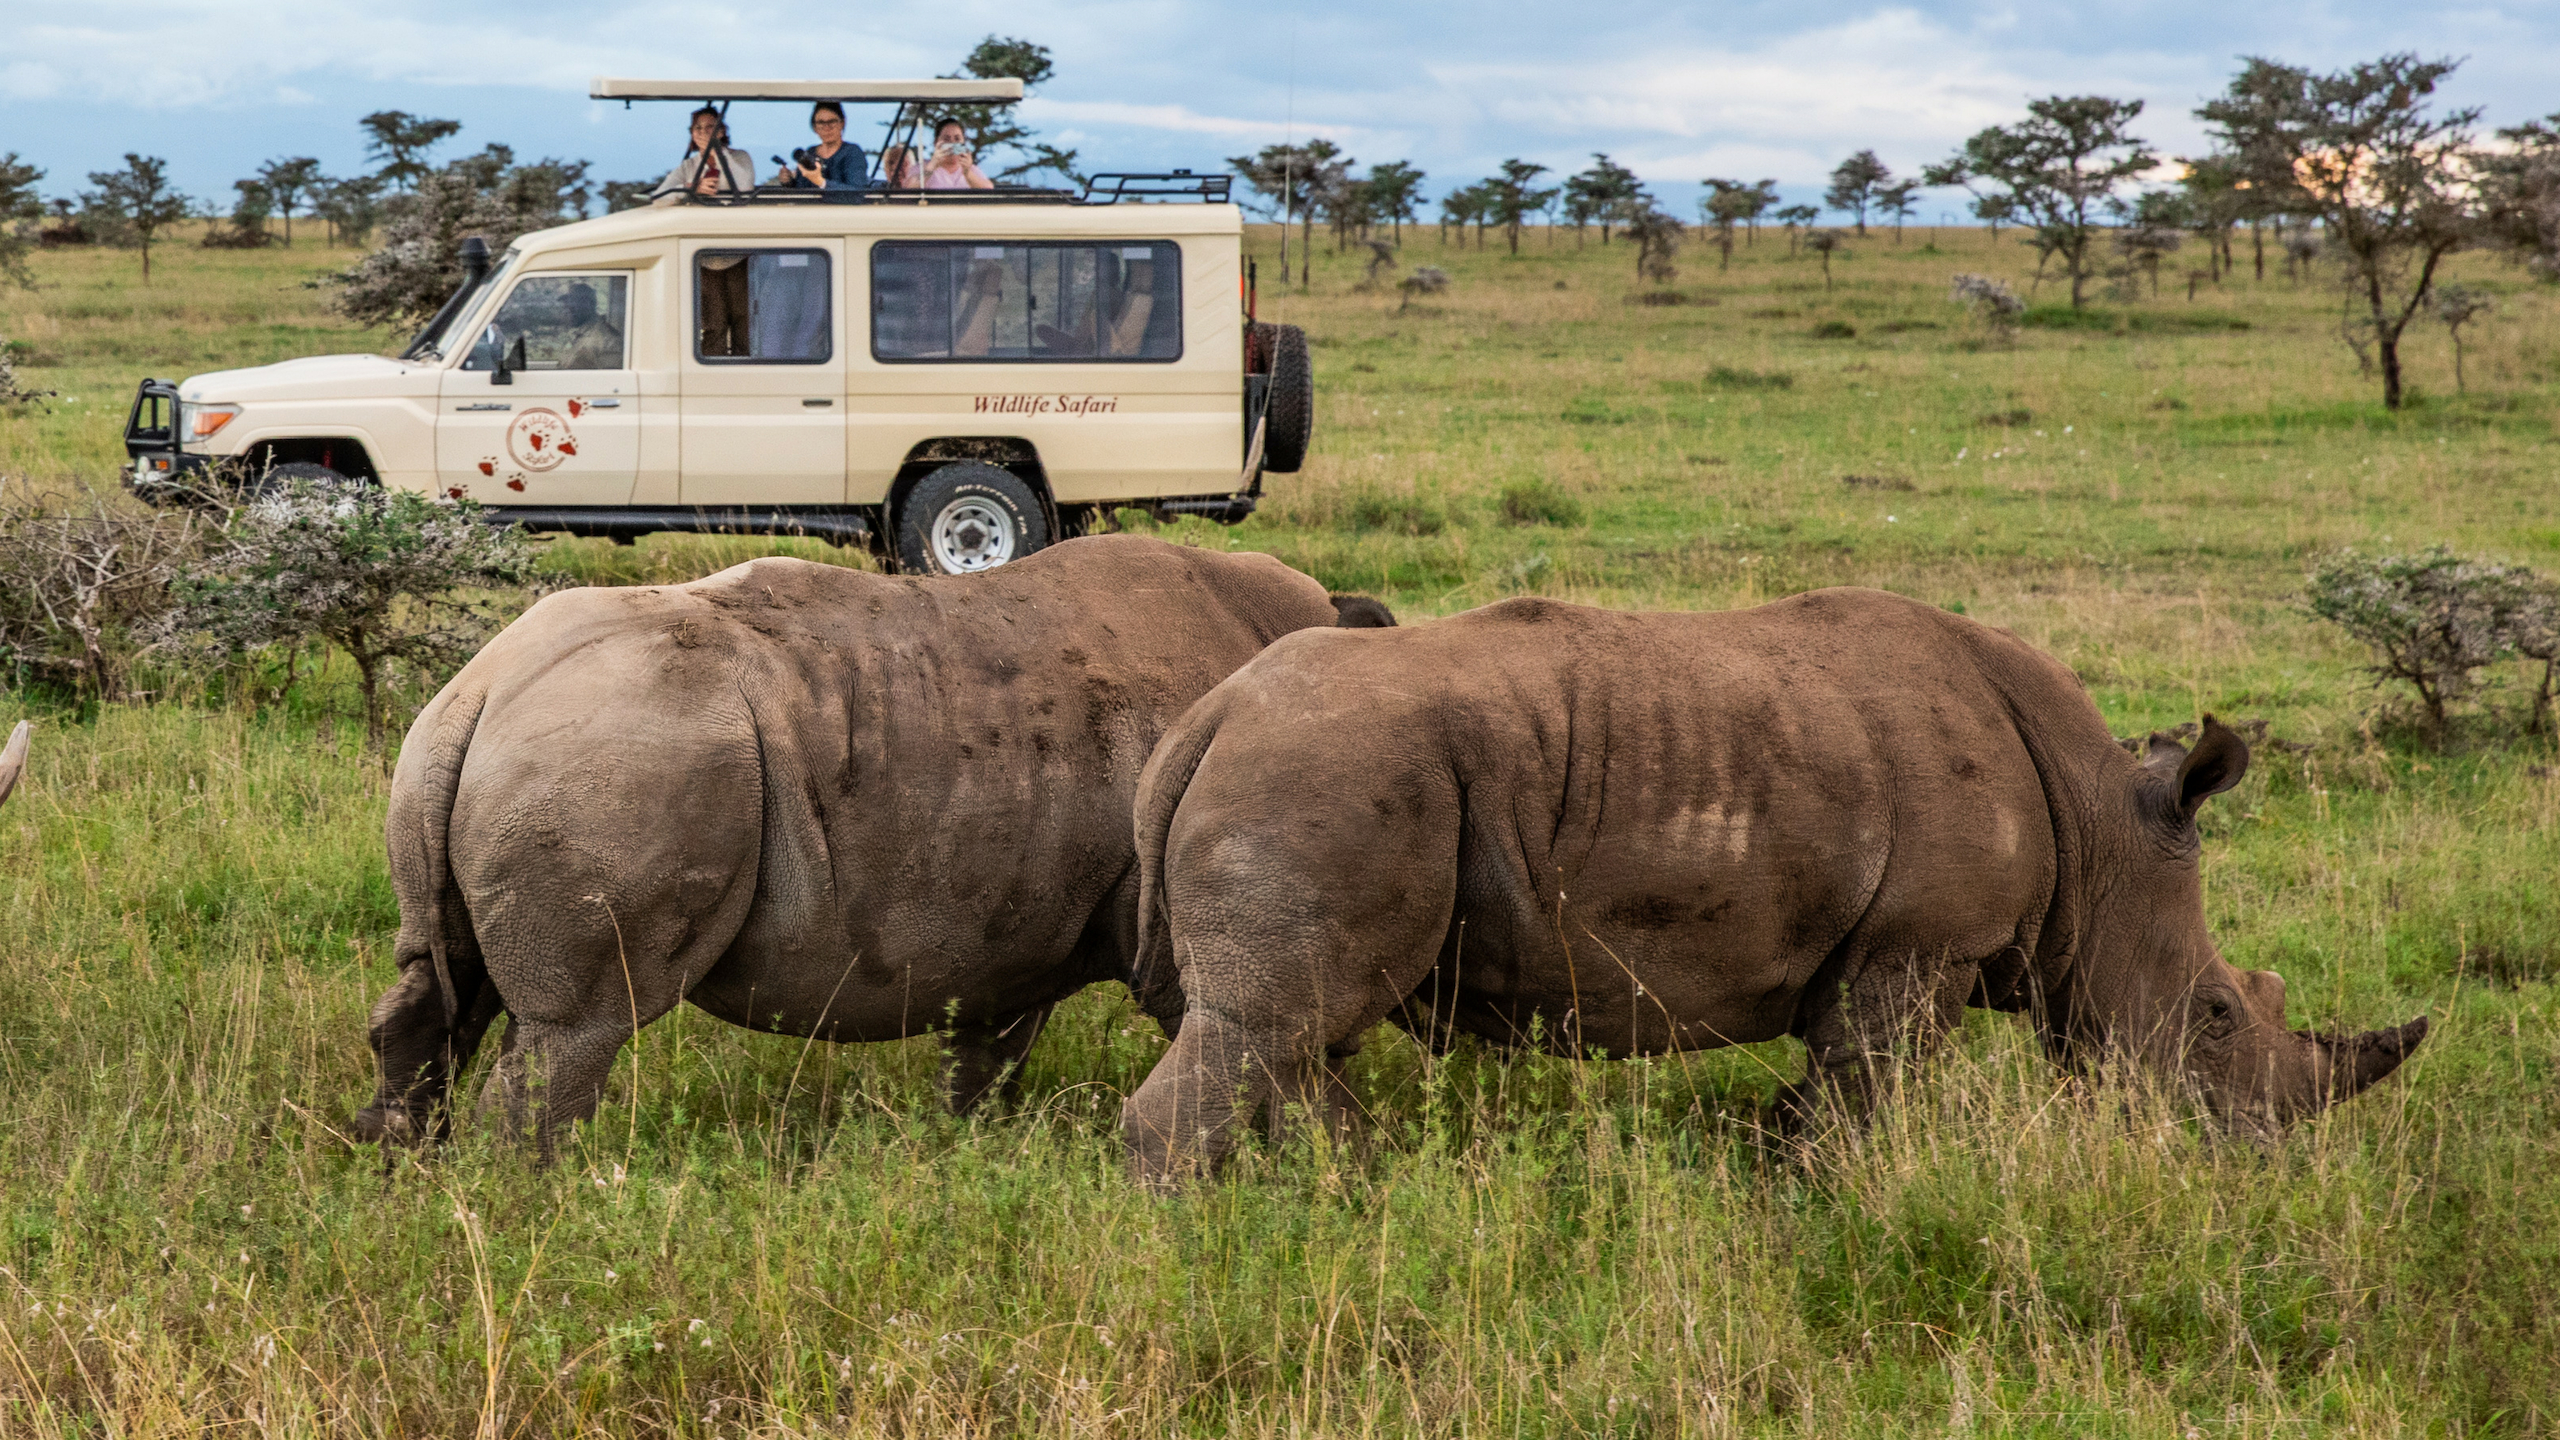 Wildlife Safari offers customised safari vehicles. © Wildlife Safari